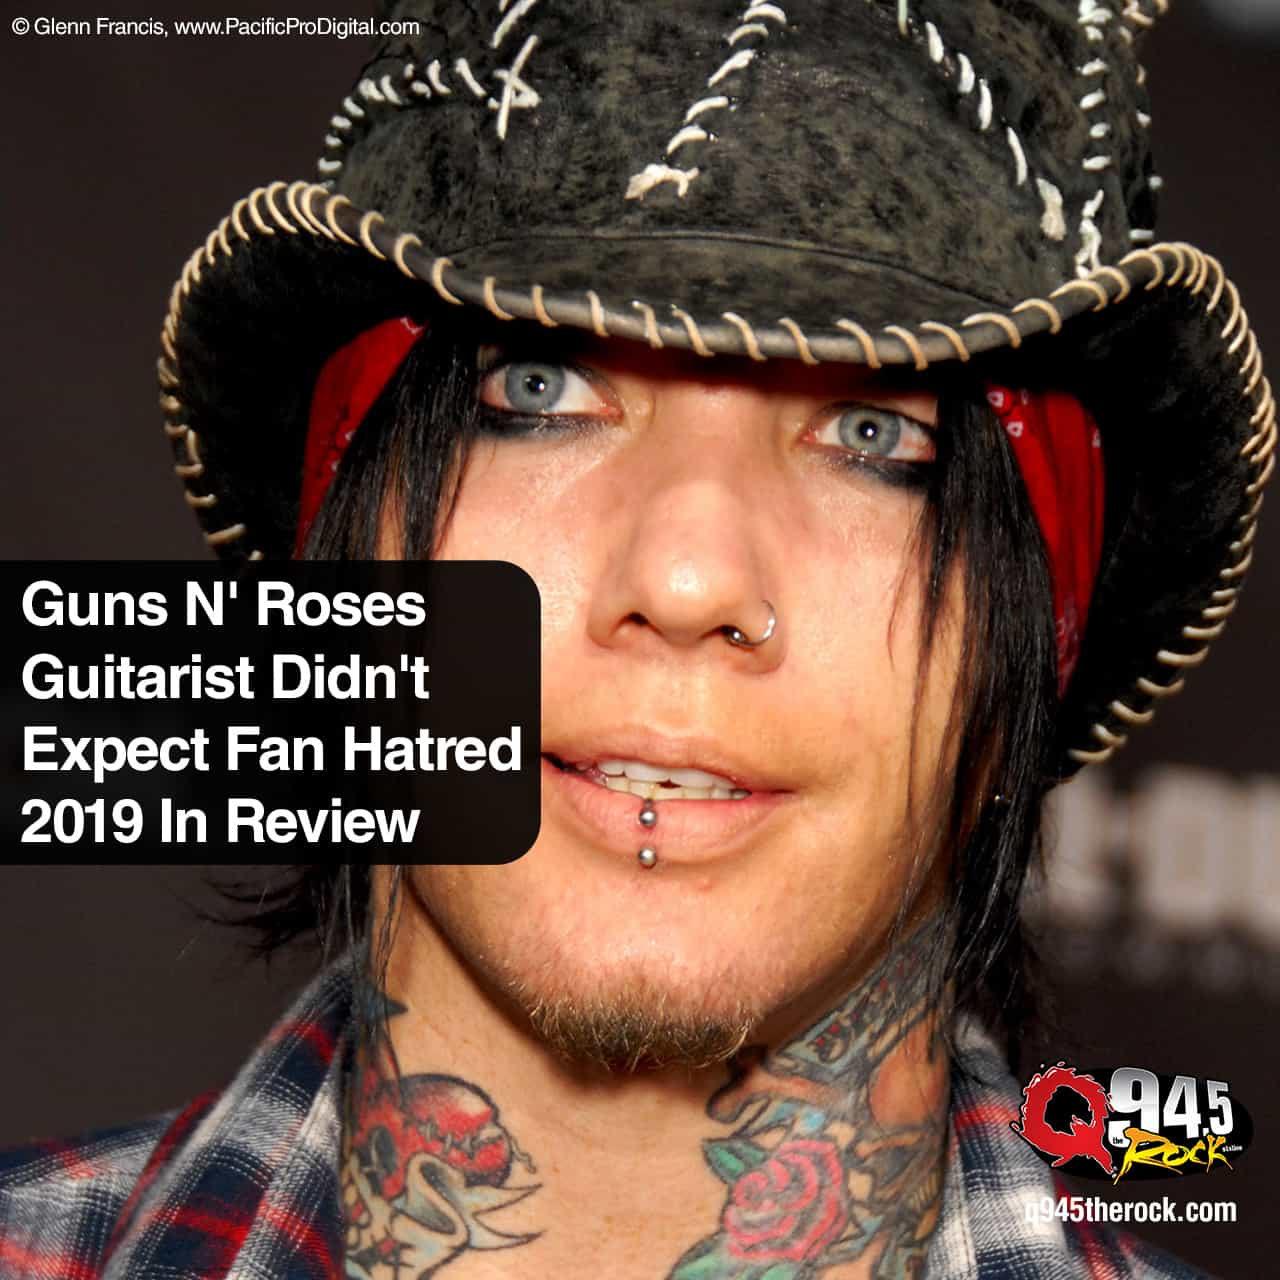 Guns N' Roses Guitarist Didn't Expect Fan Hatred to be Top 2019 In Review